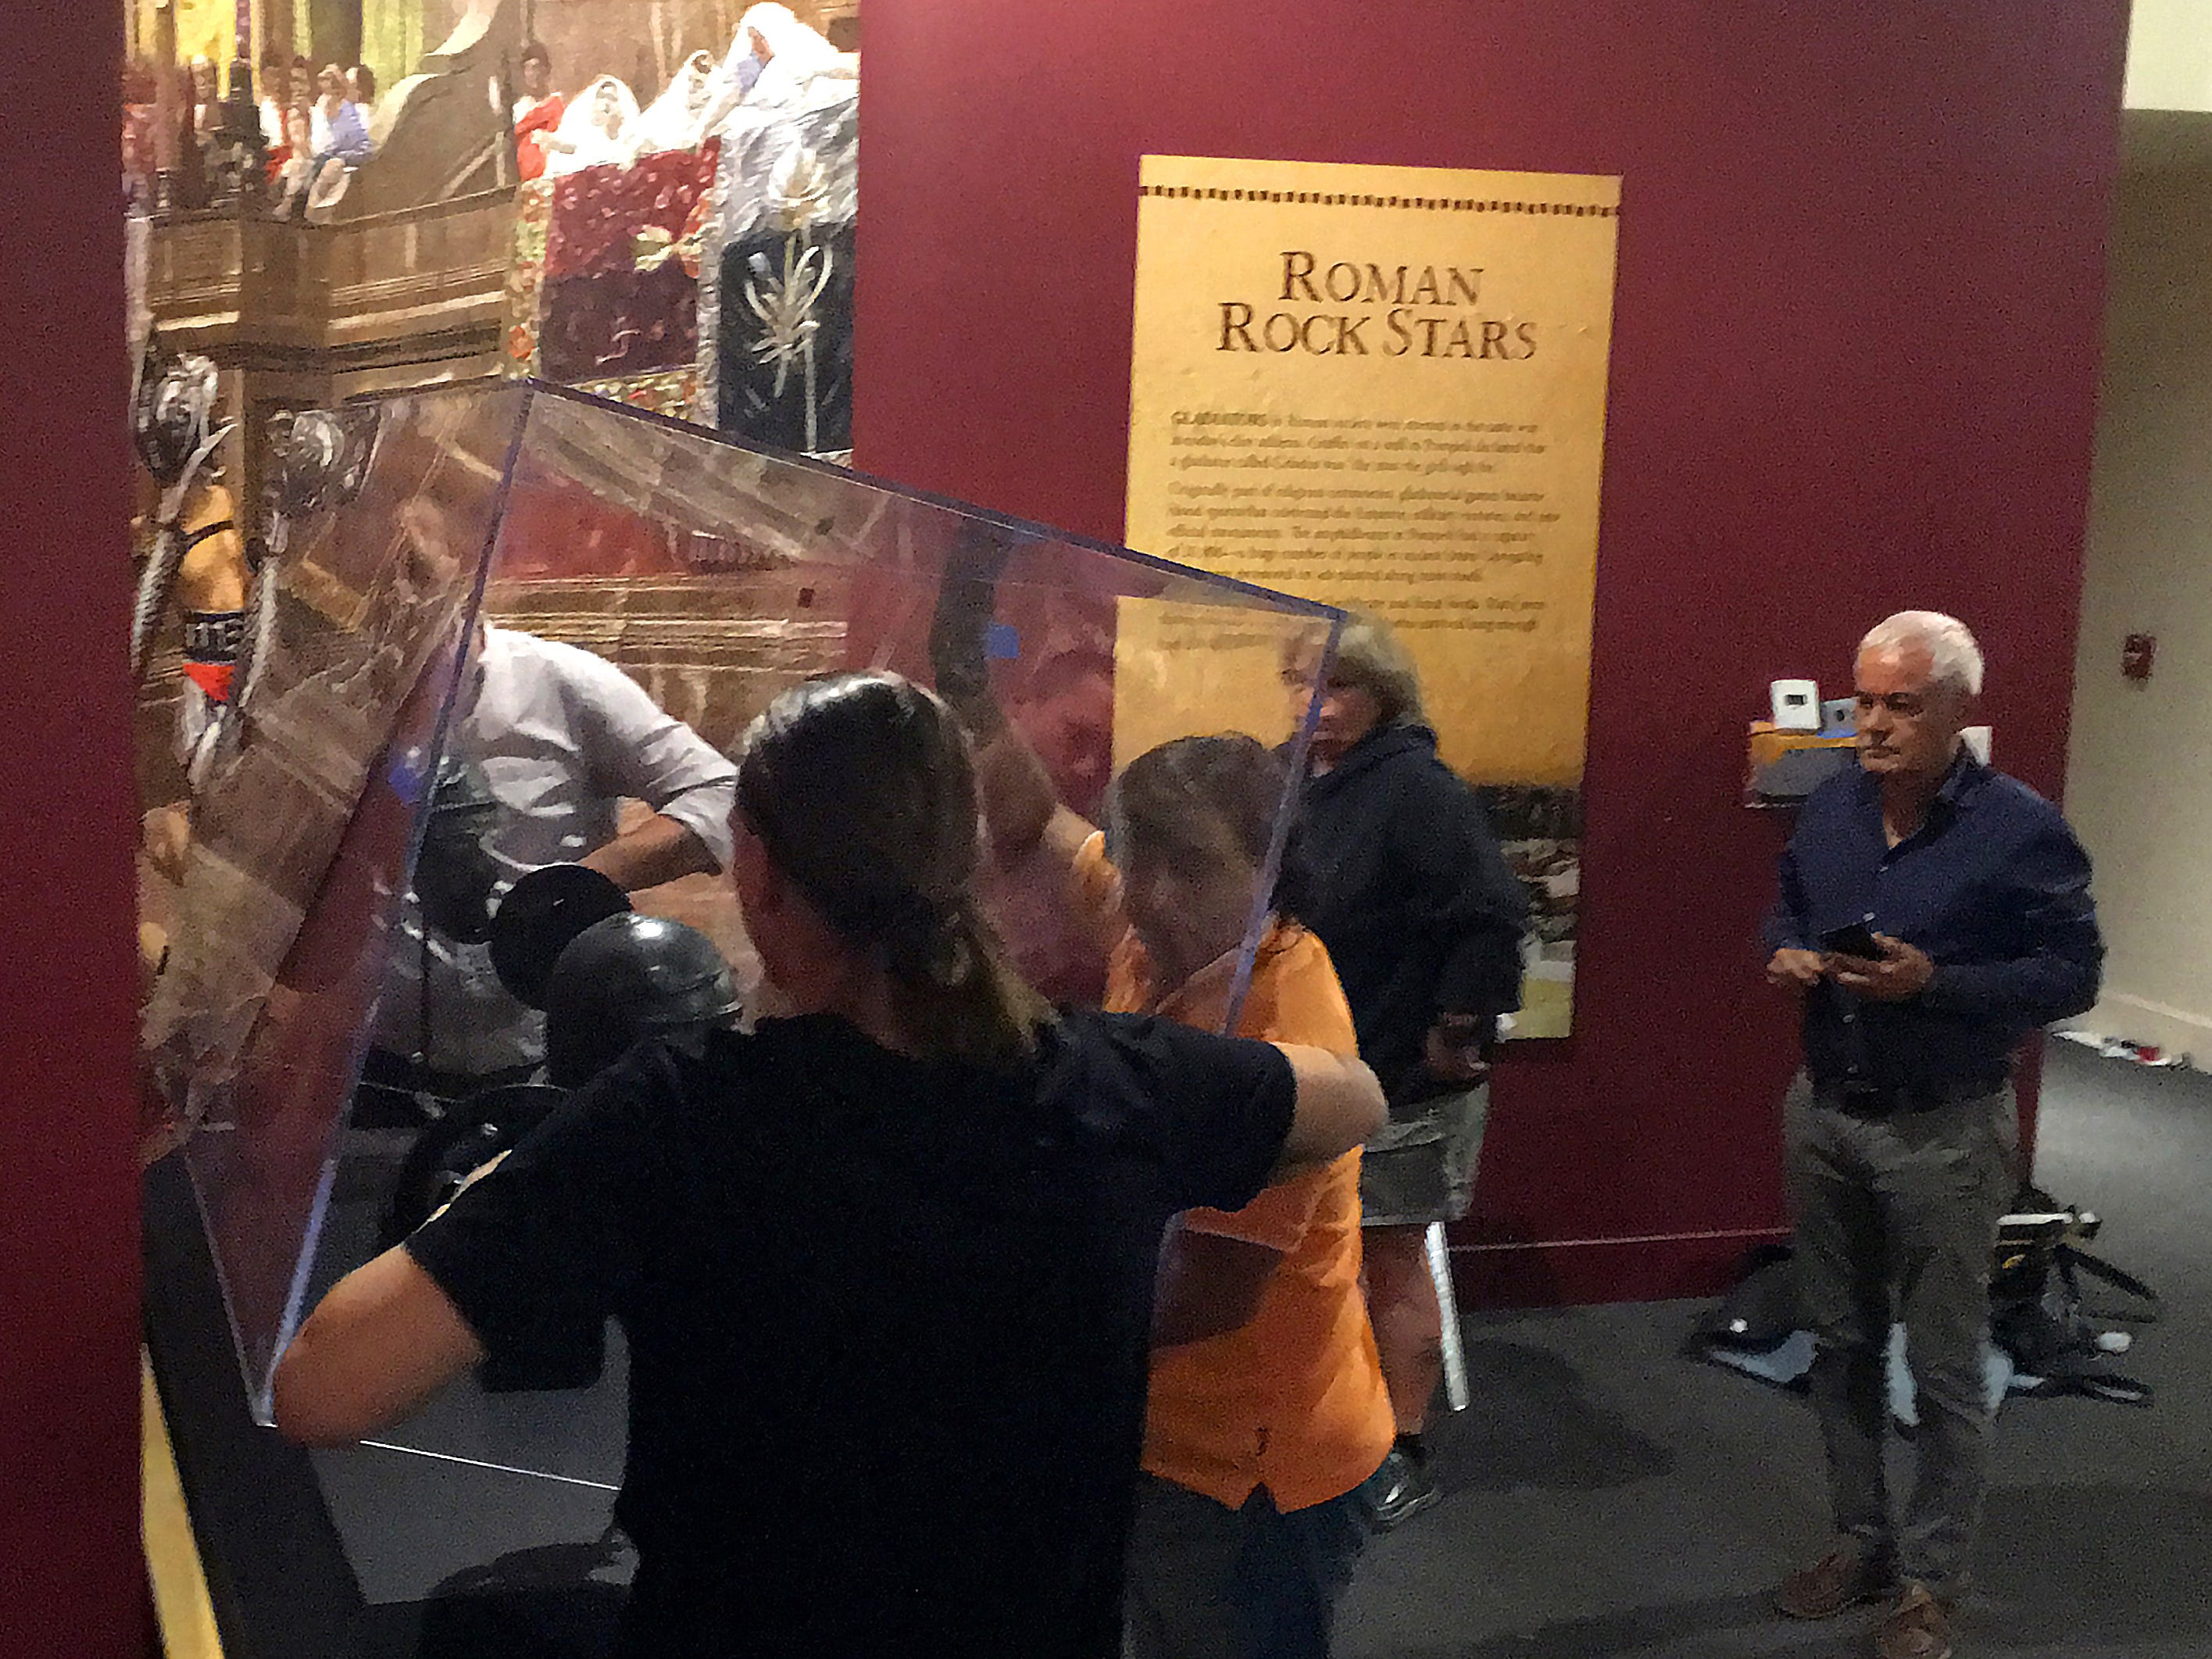 Exhibit staff install one of many displays as part of the Pompeii exhibit at the Ronald Reagan Presidential Library & Museum in Simi Valley on Tuesday.